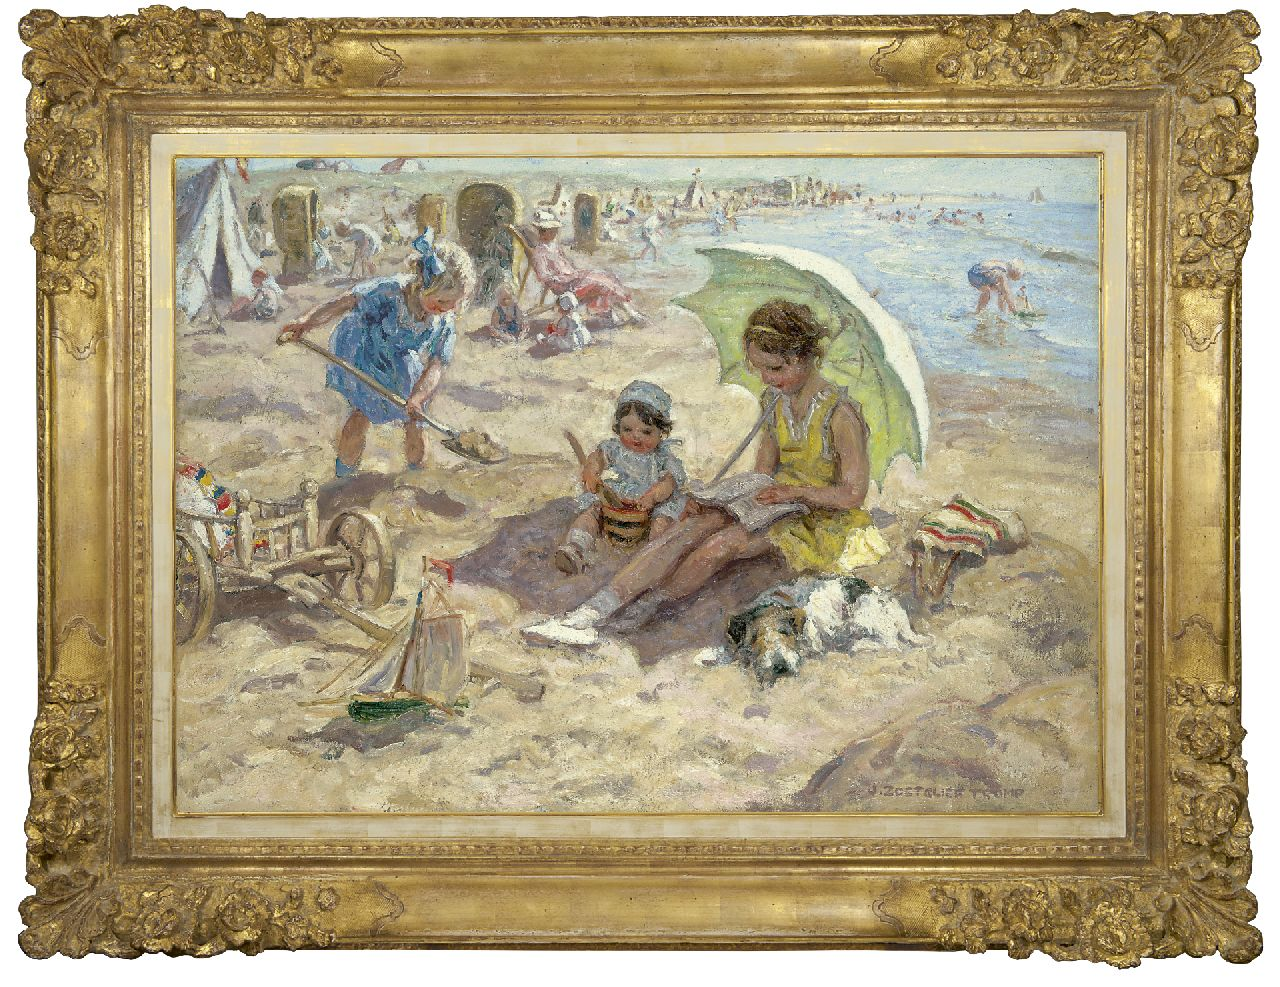 Zoetelief Tromp J.  | Johannes 'Jan' Zoetelief Tromp | Paintings offered for sale | Children playing on the beach of Katwijk, oil on canvas 68.3 x 95.9 cm, signed l.r. and reverse